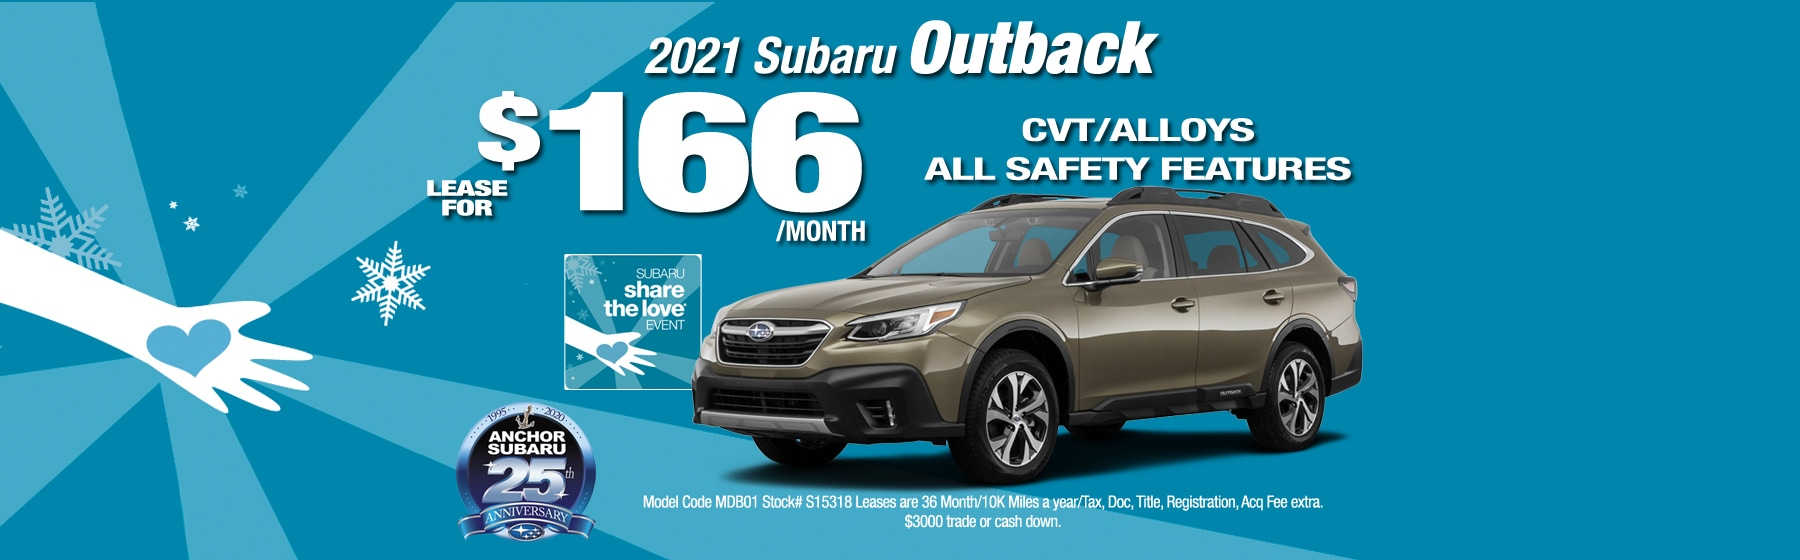 2021 Subaru Outback Lease for only $166 per month